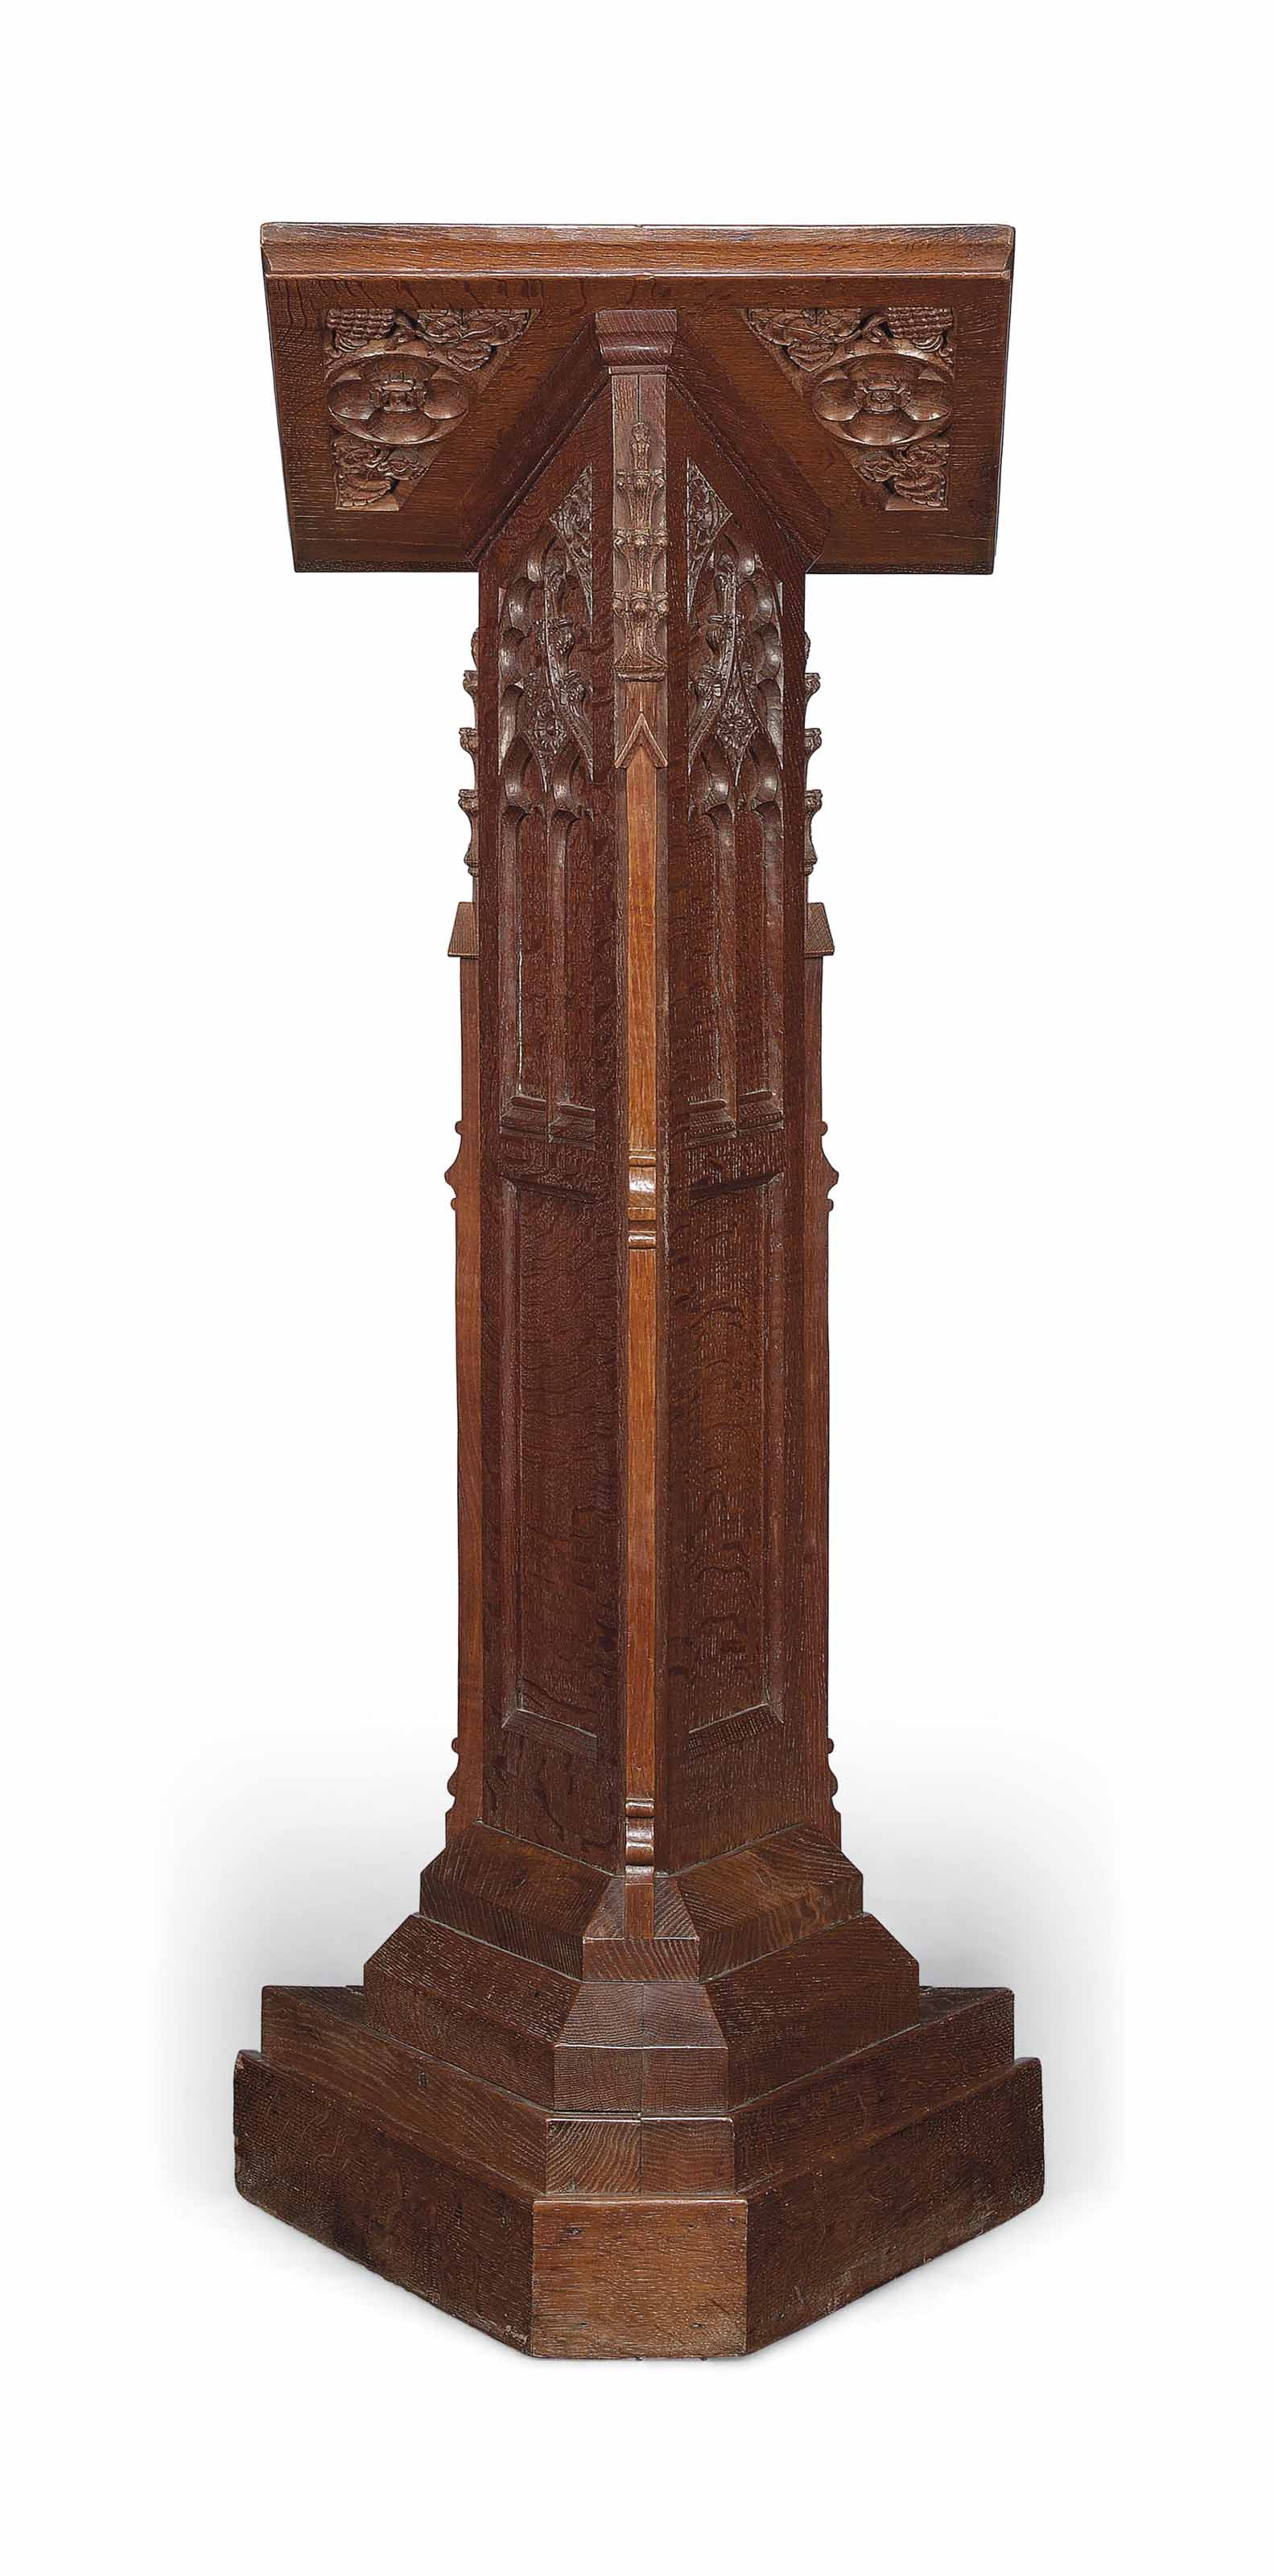 A ROBERT THOMPSON (1876-1955) OF KILBURN (MOUSEMAN) OAK LECTERN